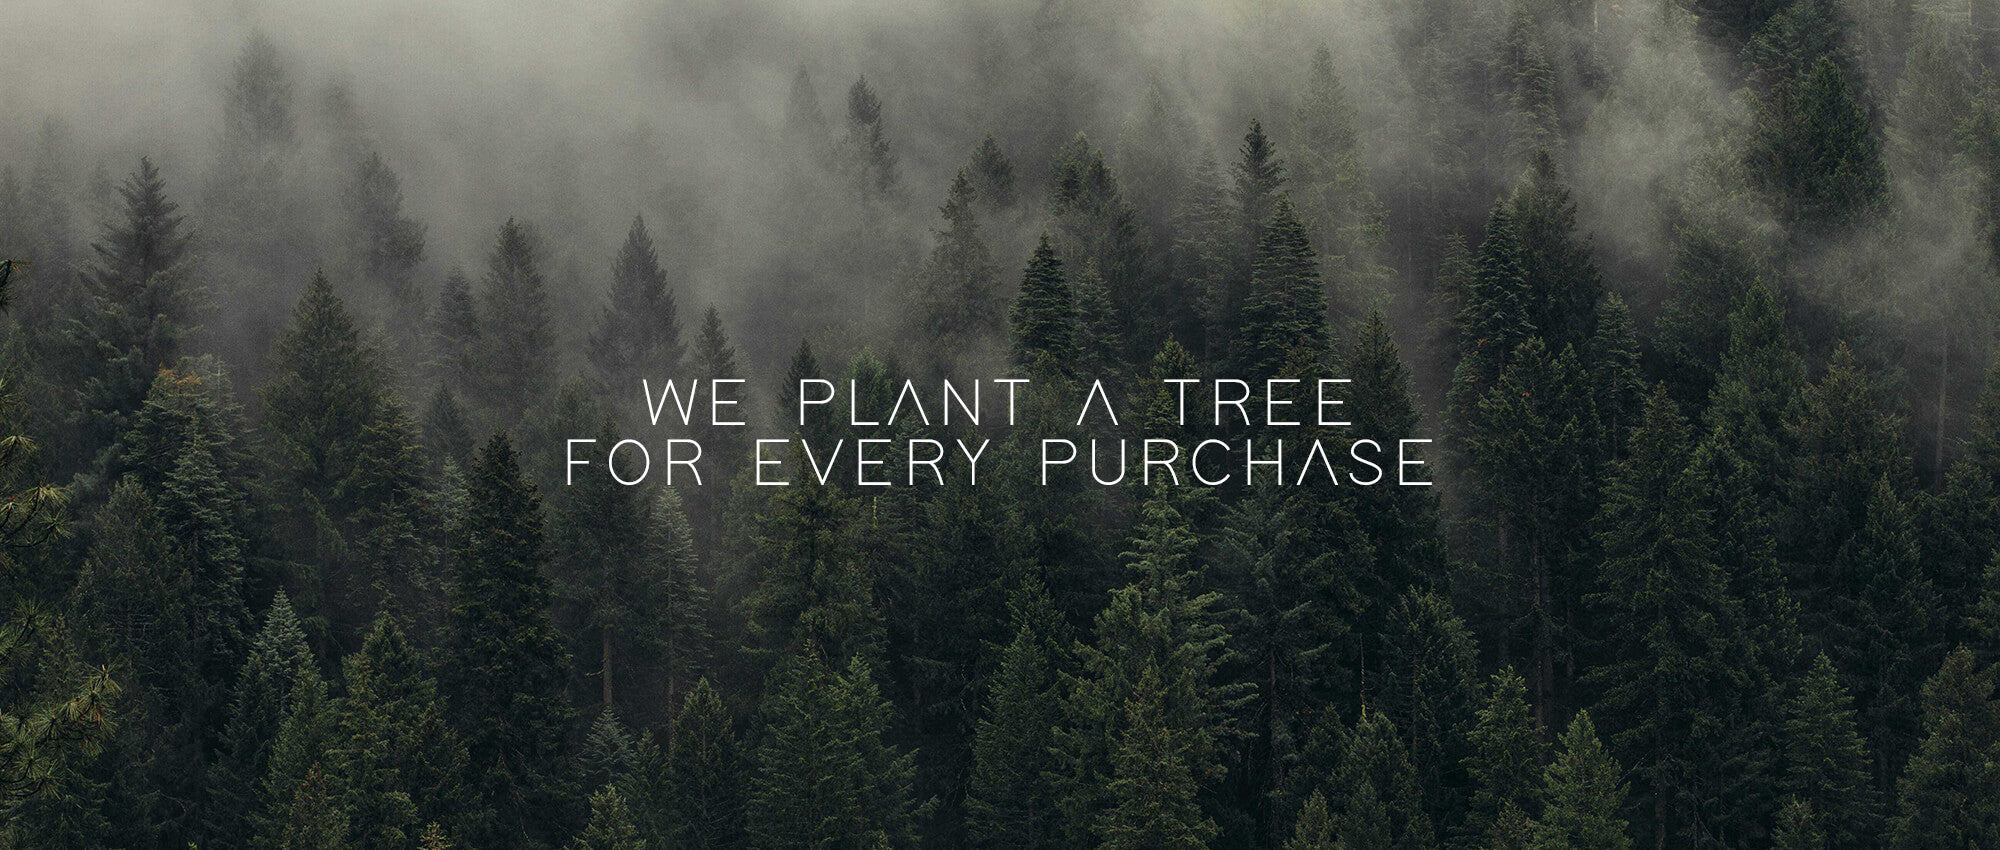 MADOW plants a tree for every purchase